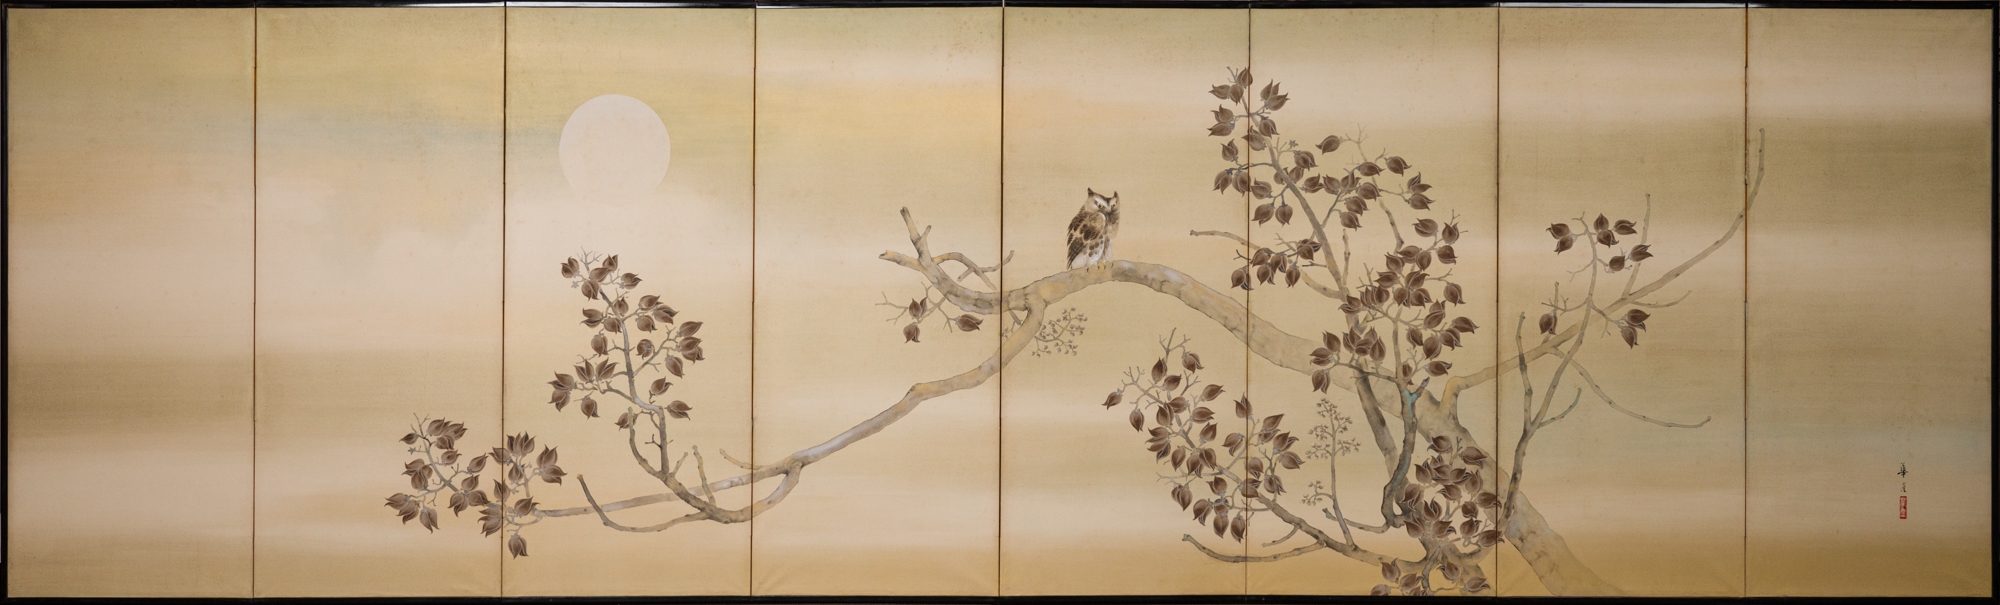 Japanese Eight Panel Screen: Owl in a Moonlit Landscape